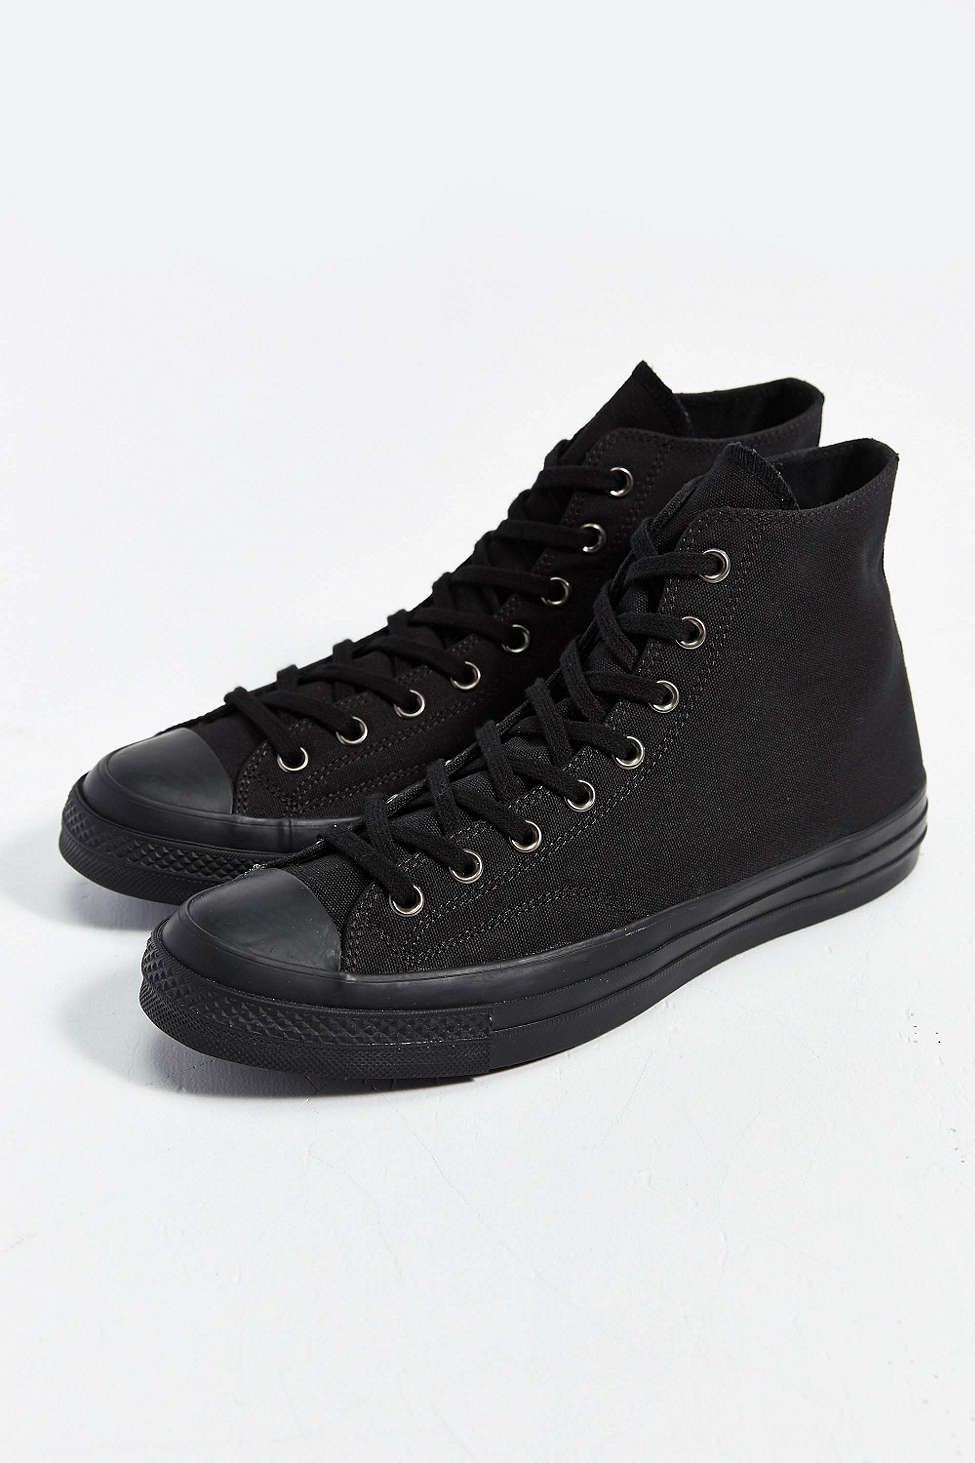 194c1bf71533 Converse Chuck Taylor All Star 70s Mono High-Top Sneaker in 2019 ...